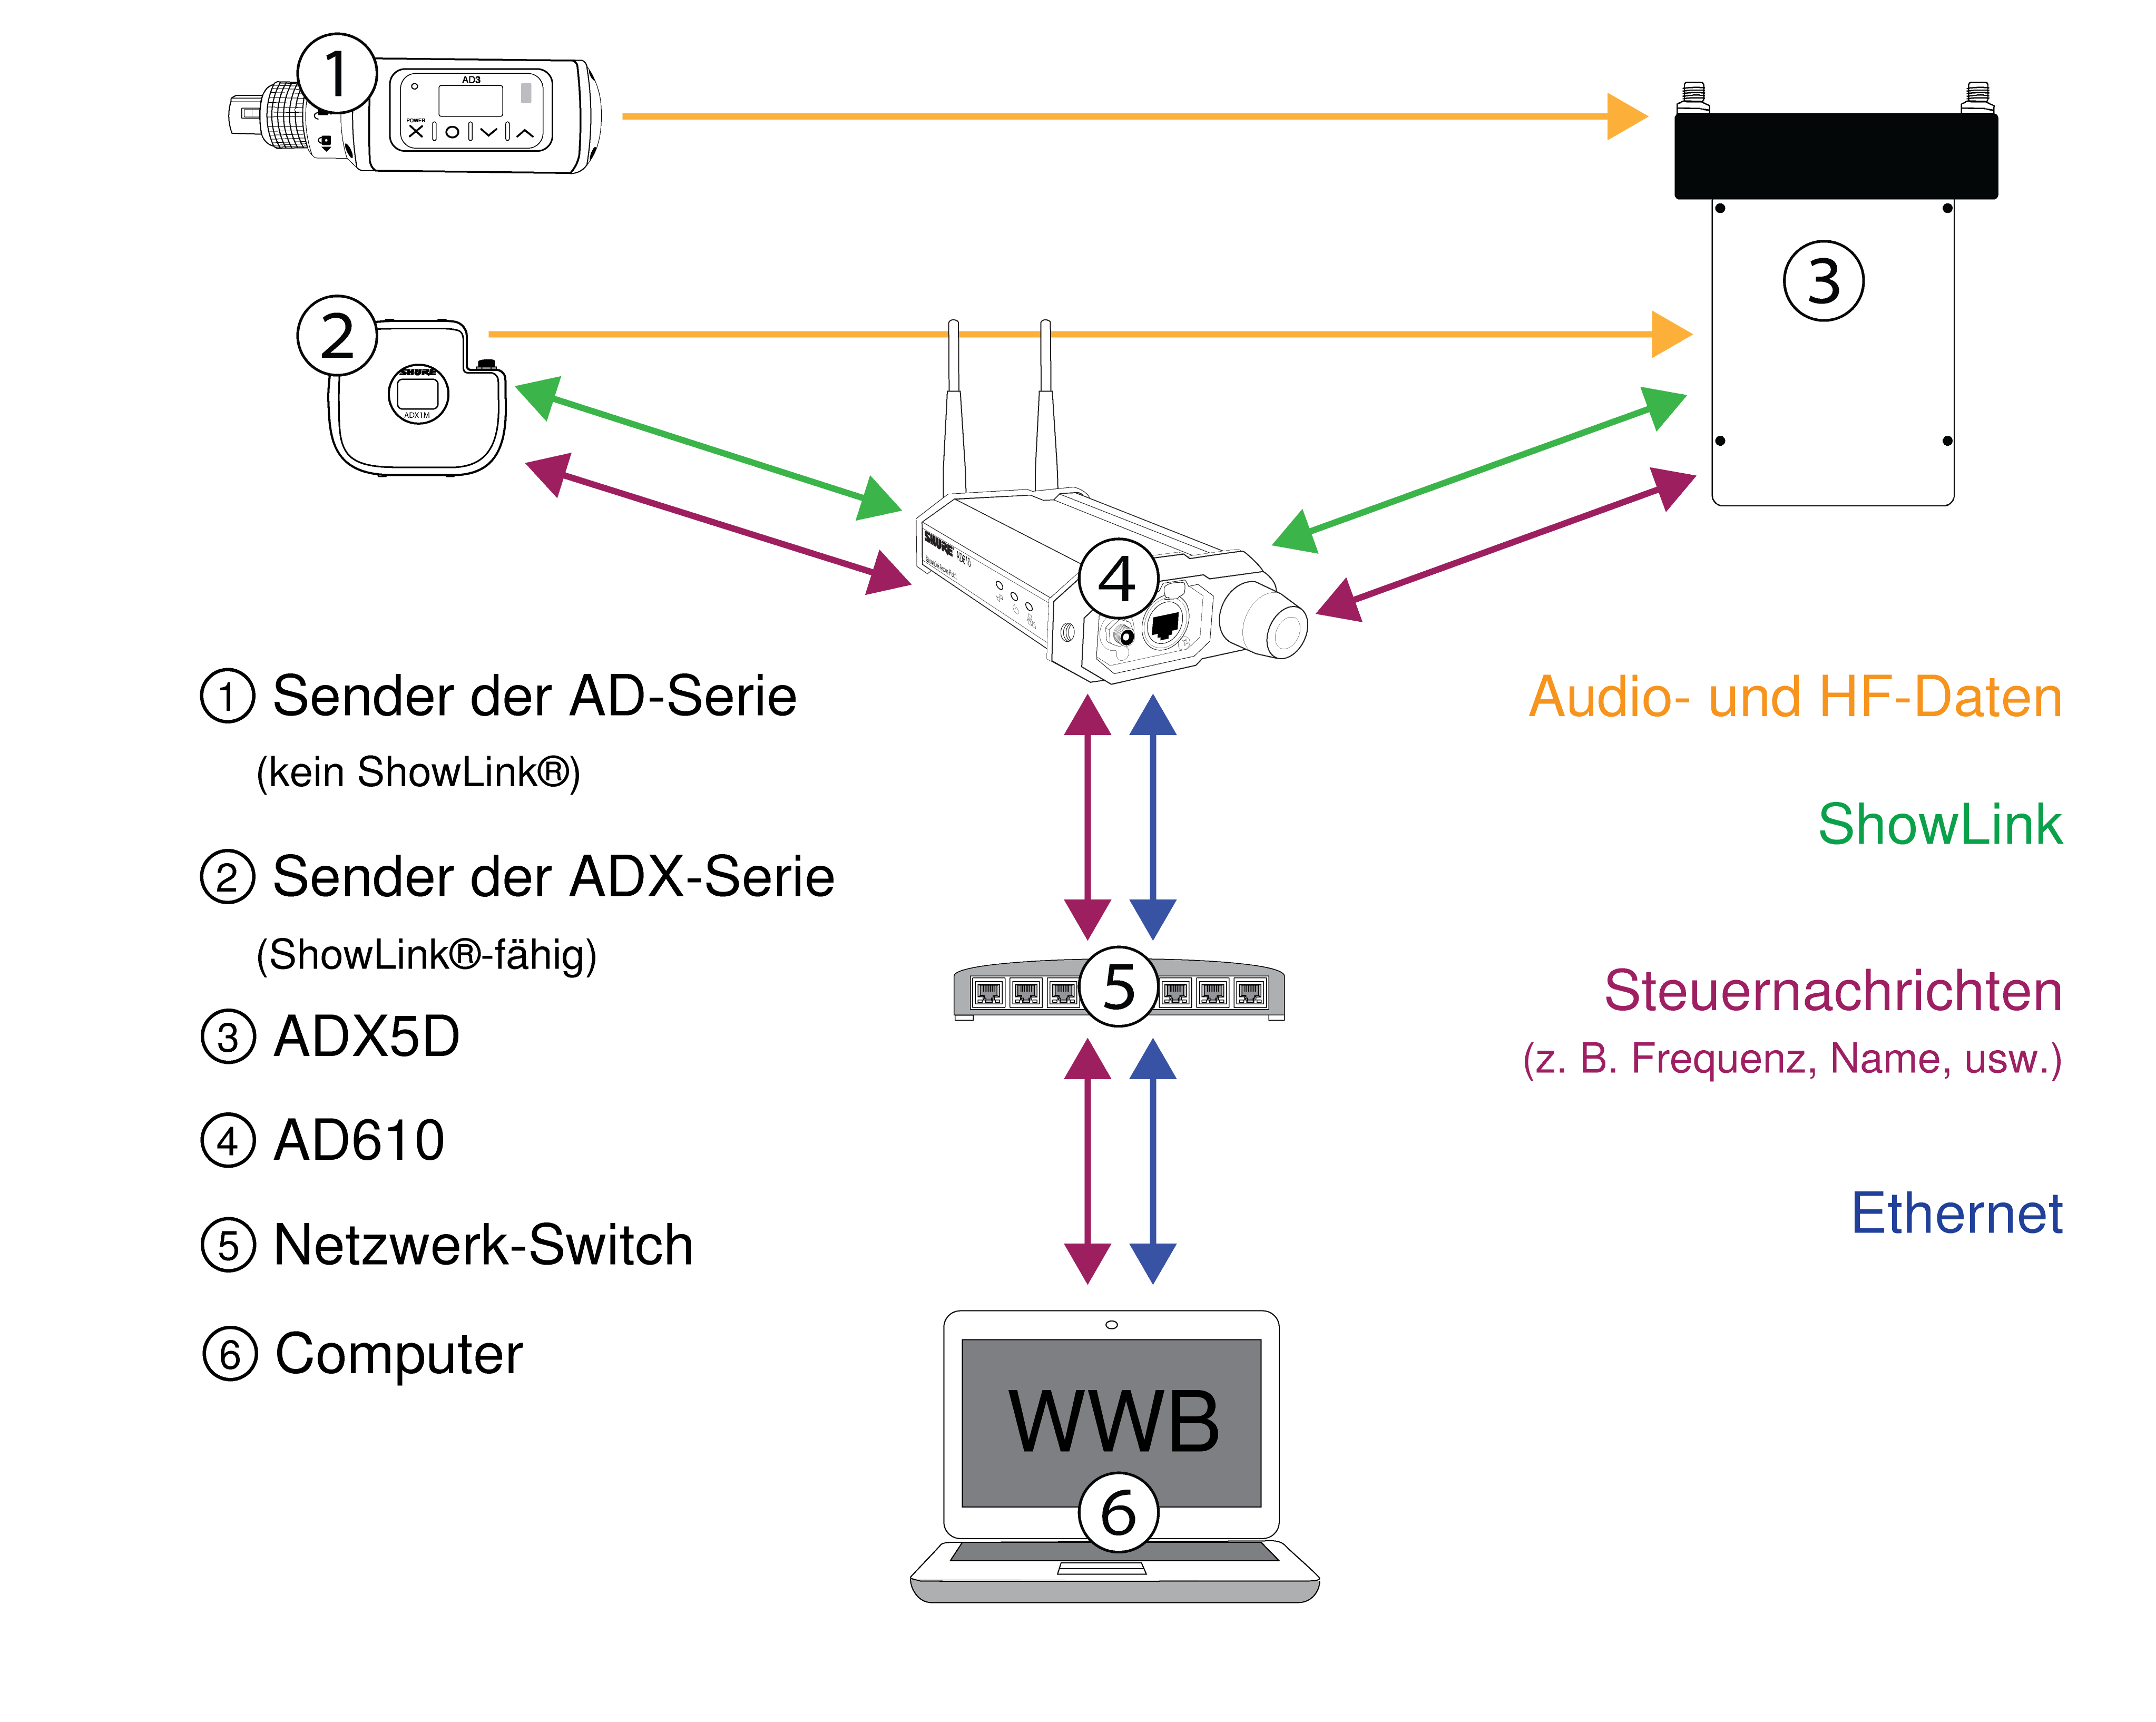 A diagram showing how ADX5D passes audio & RF data, ShowLink, control messaging, and Ethernet to various networked devices.